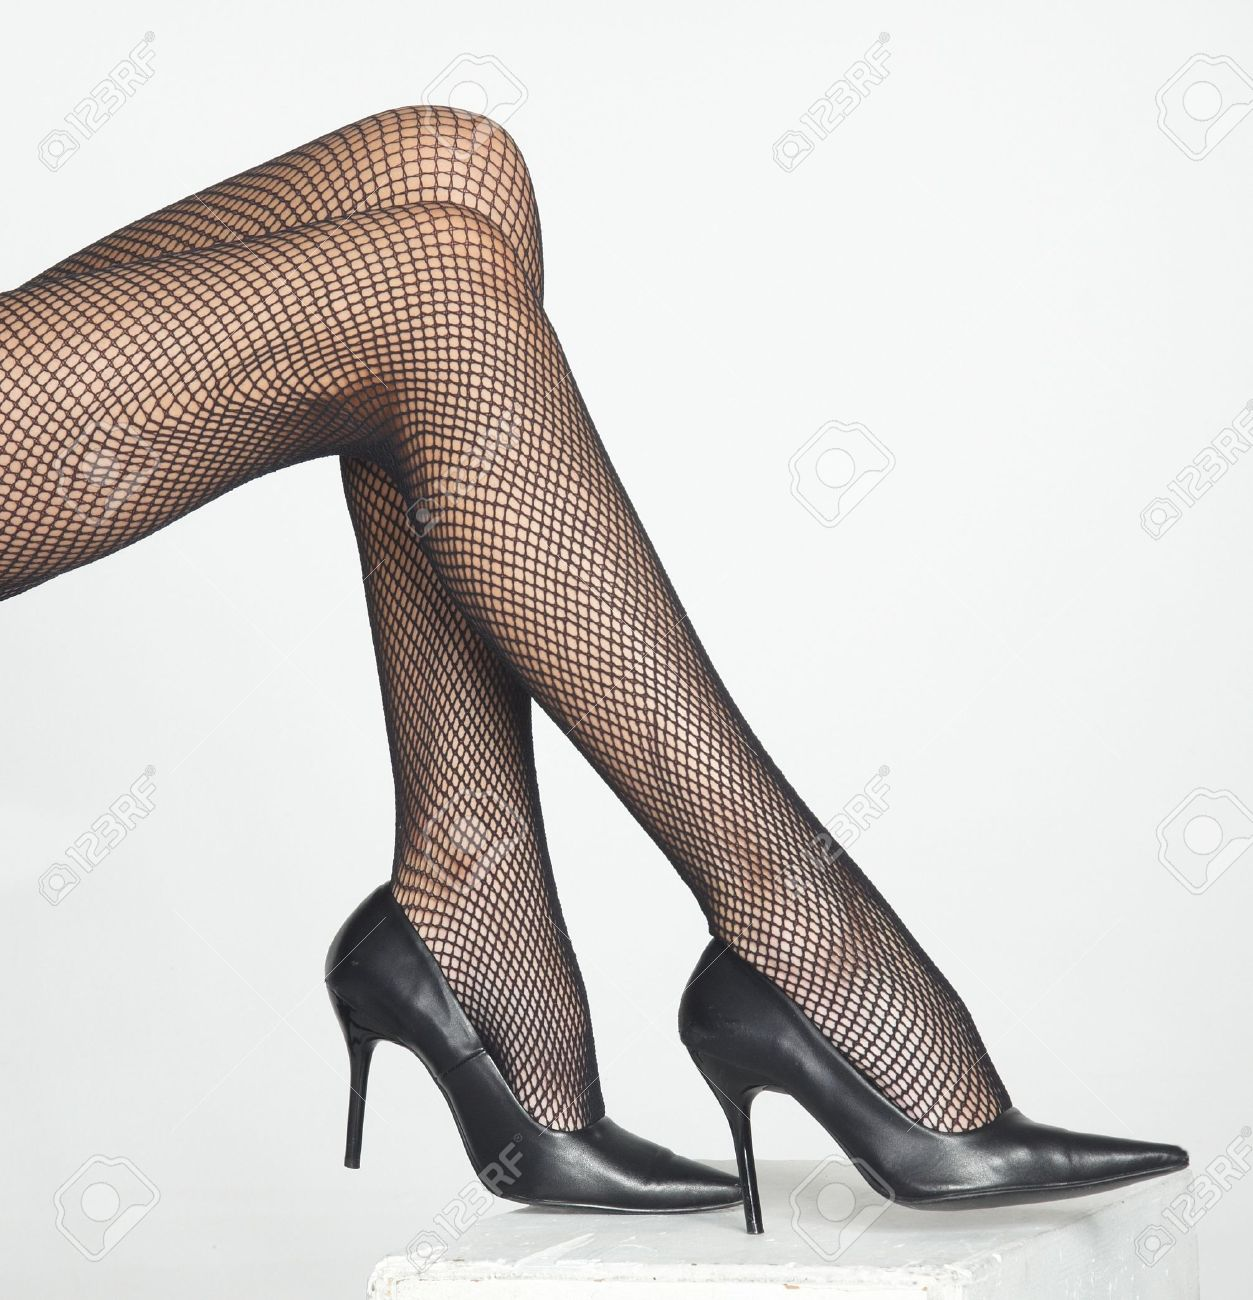 bc96c4353678 Woman s Legs Wearing Black Fishnet Pantyhose and Black High Heels Stock  Photo - 12830359